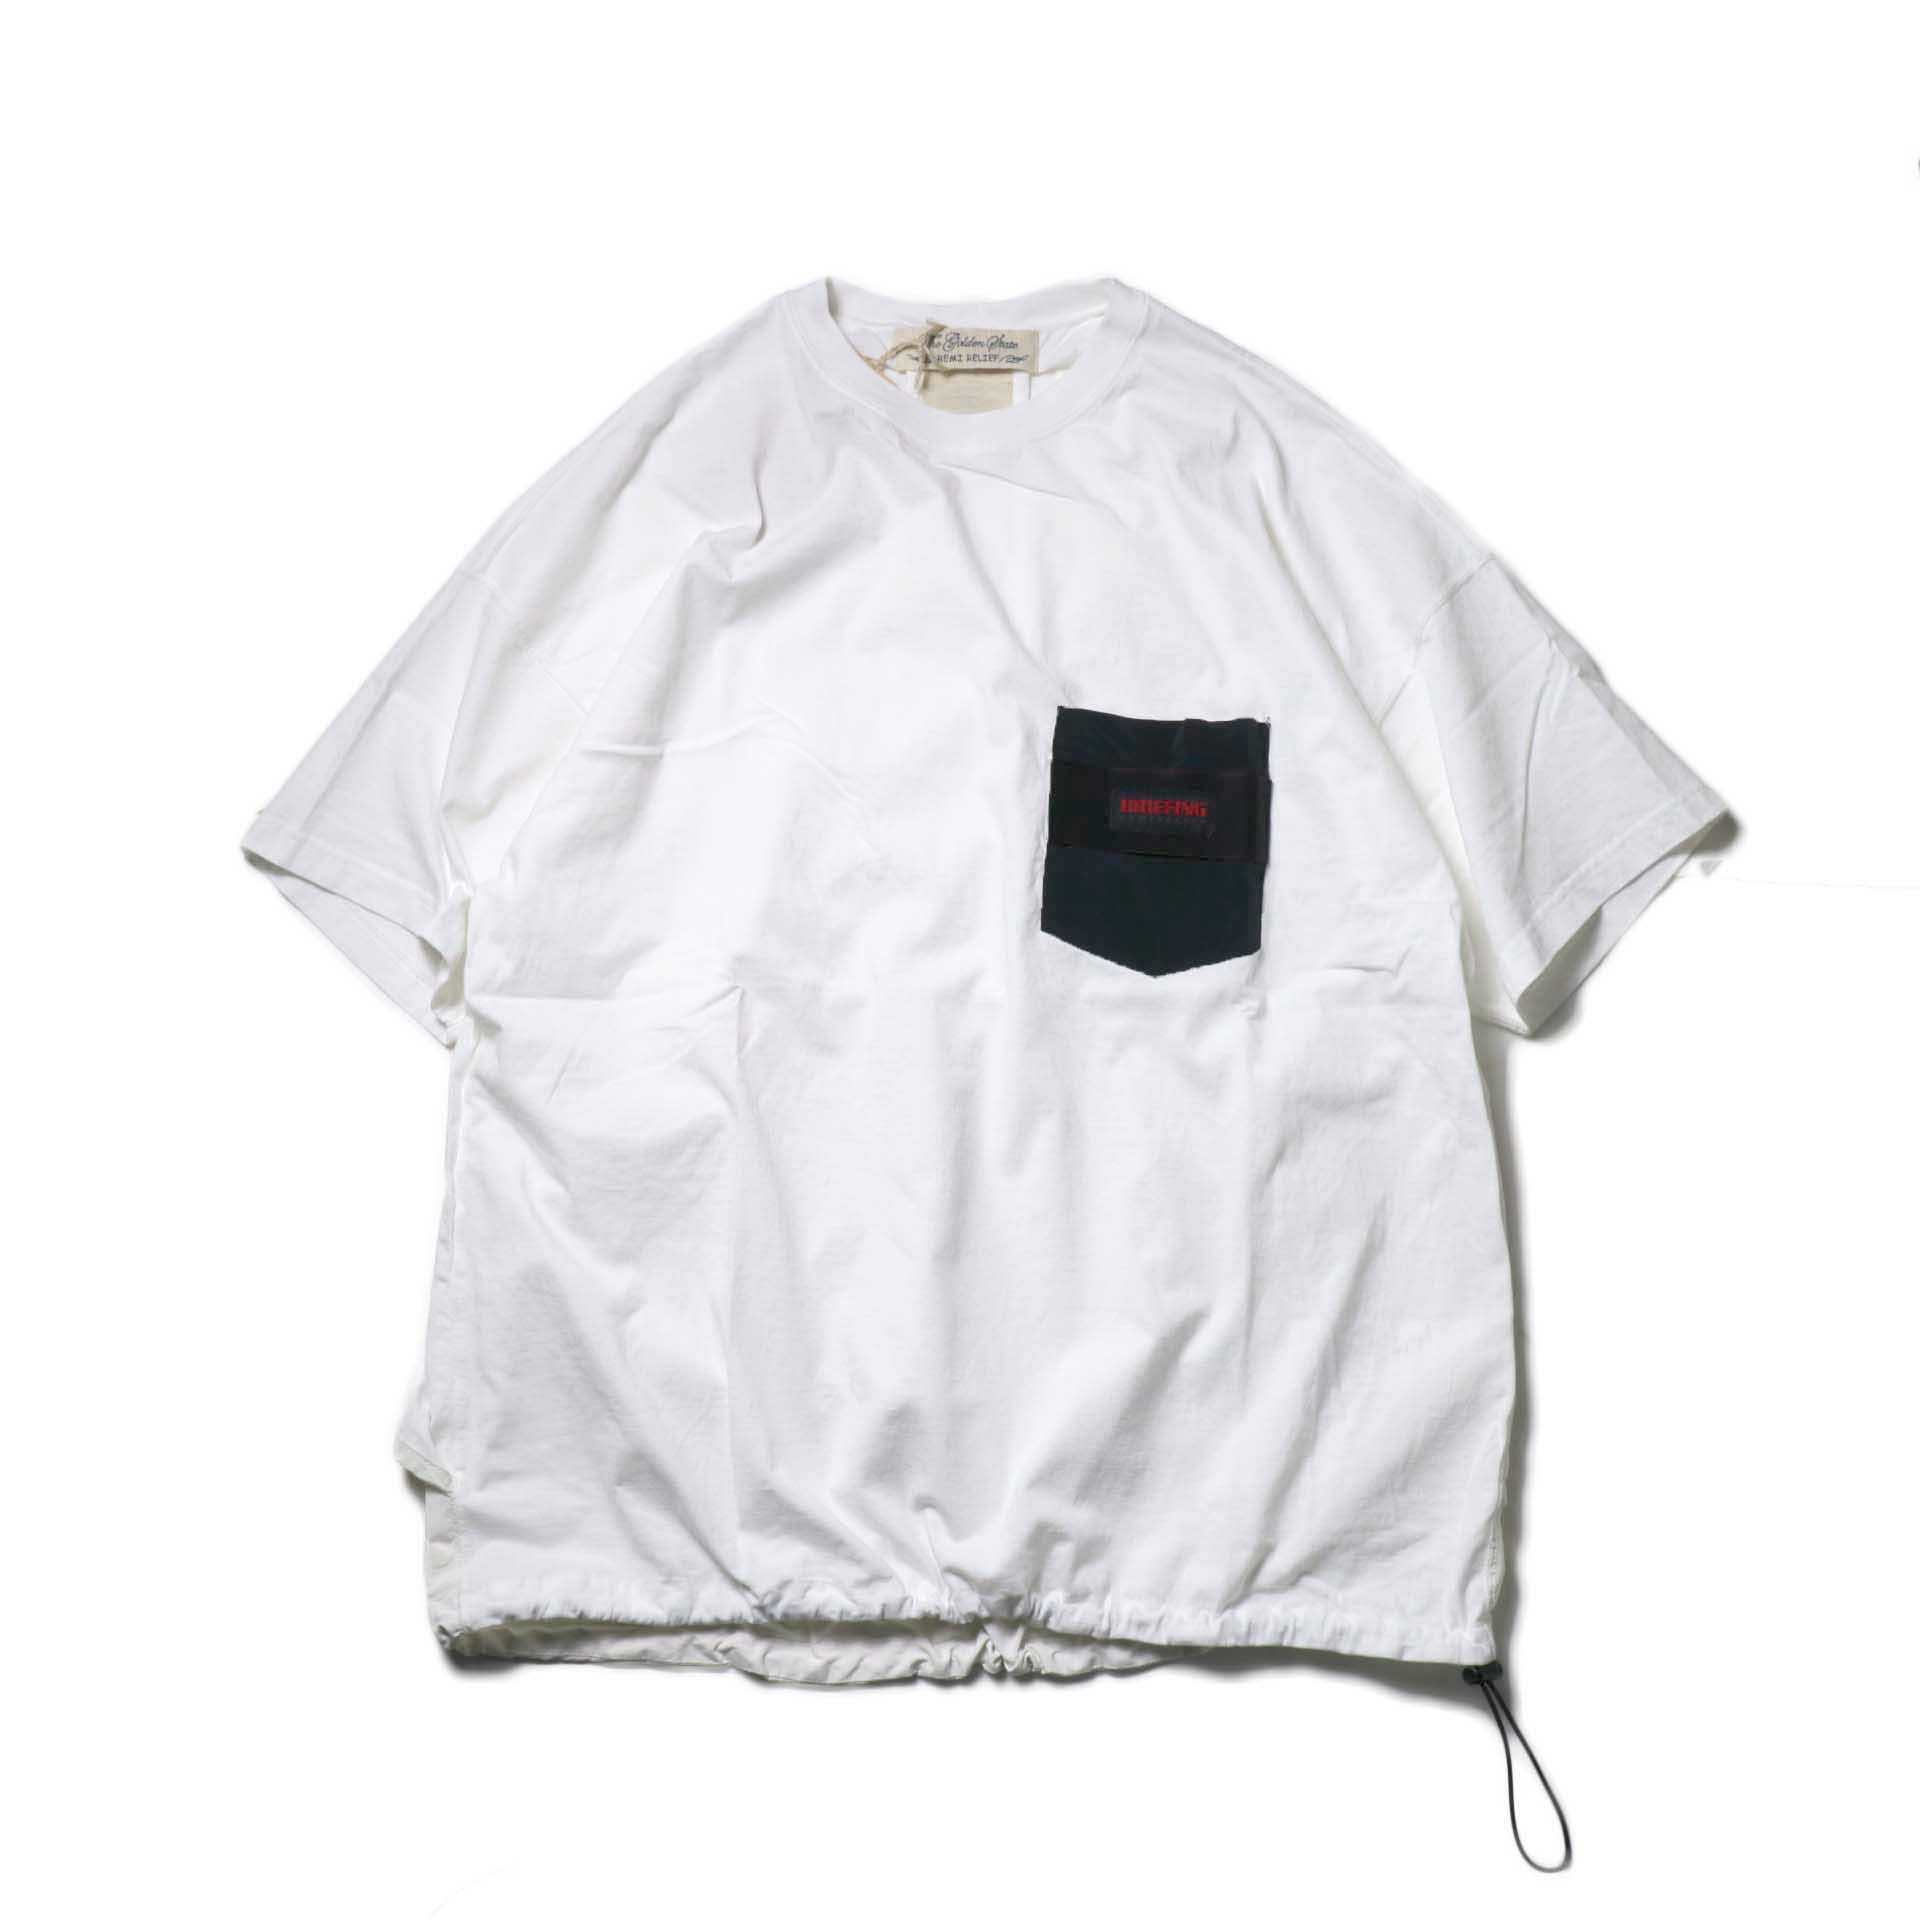 REMI RELIEF × BRIEFING / 天竺ベンチレーションTee (off)